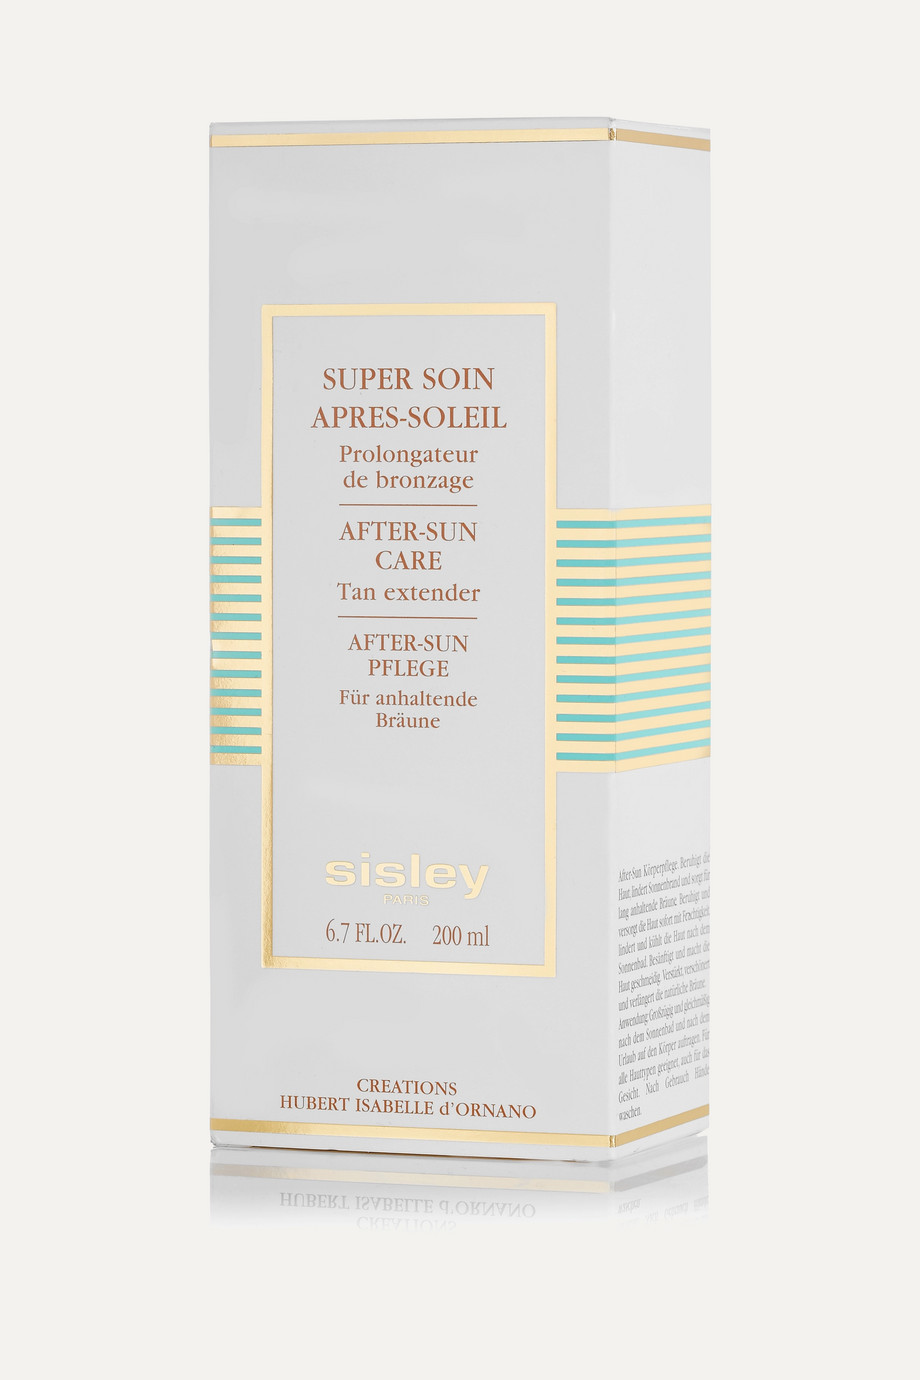 Sisley After-Sun Care, 200ml